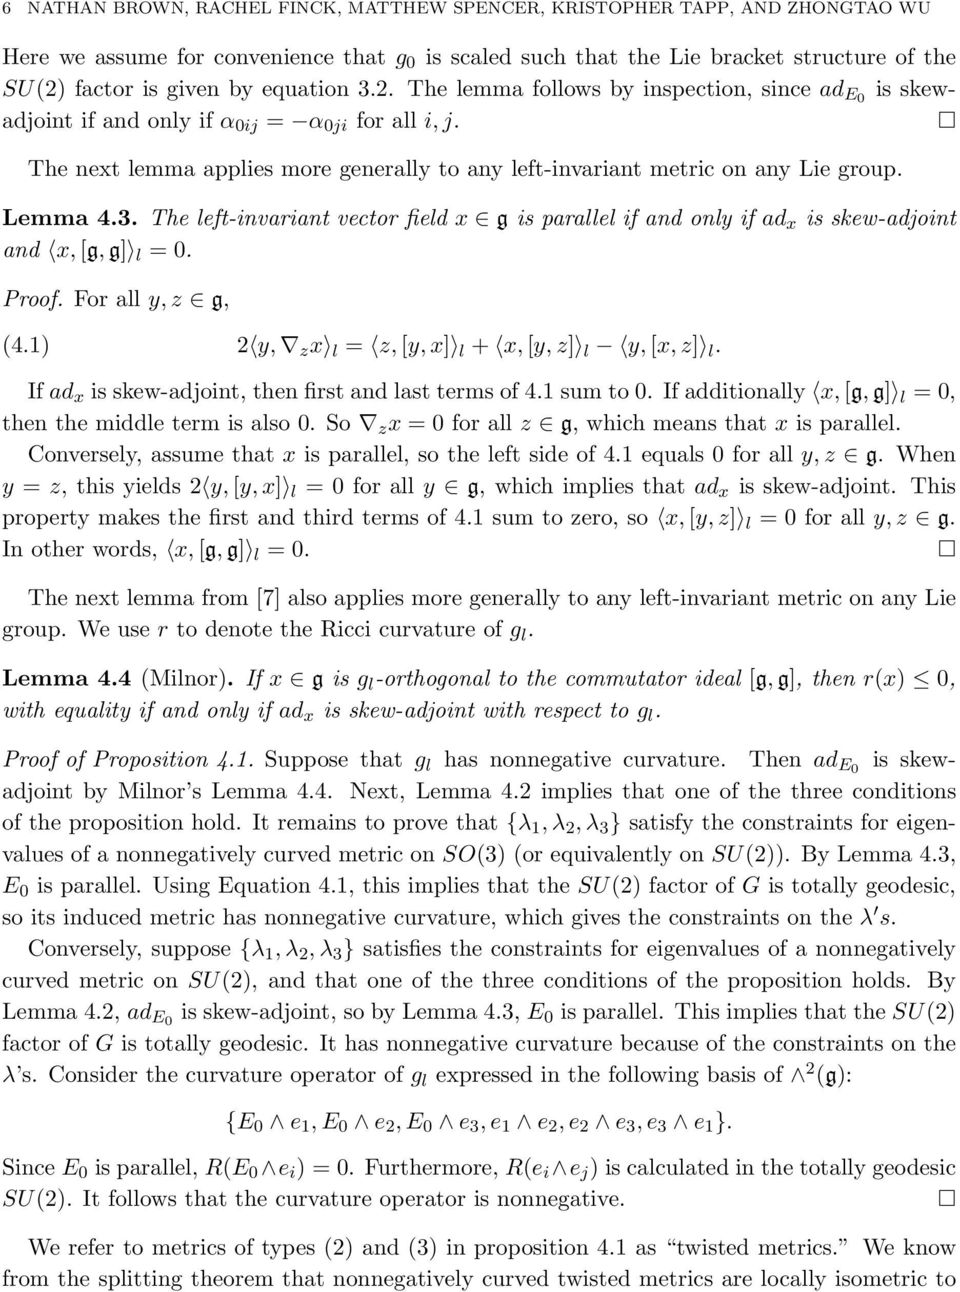 The next lemma applies more generally to any left-invariant metric on any Lie group. Lemma 4.3. The left-invariant vector field x g is parallel if and only if ad x is skew-adjoint and x, [g, g] l = 0.